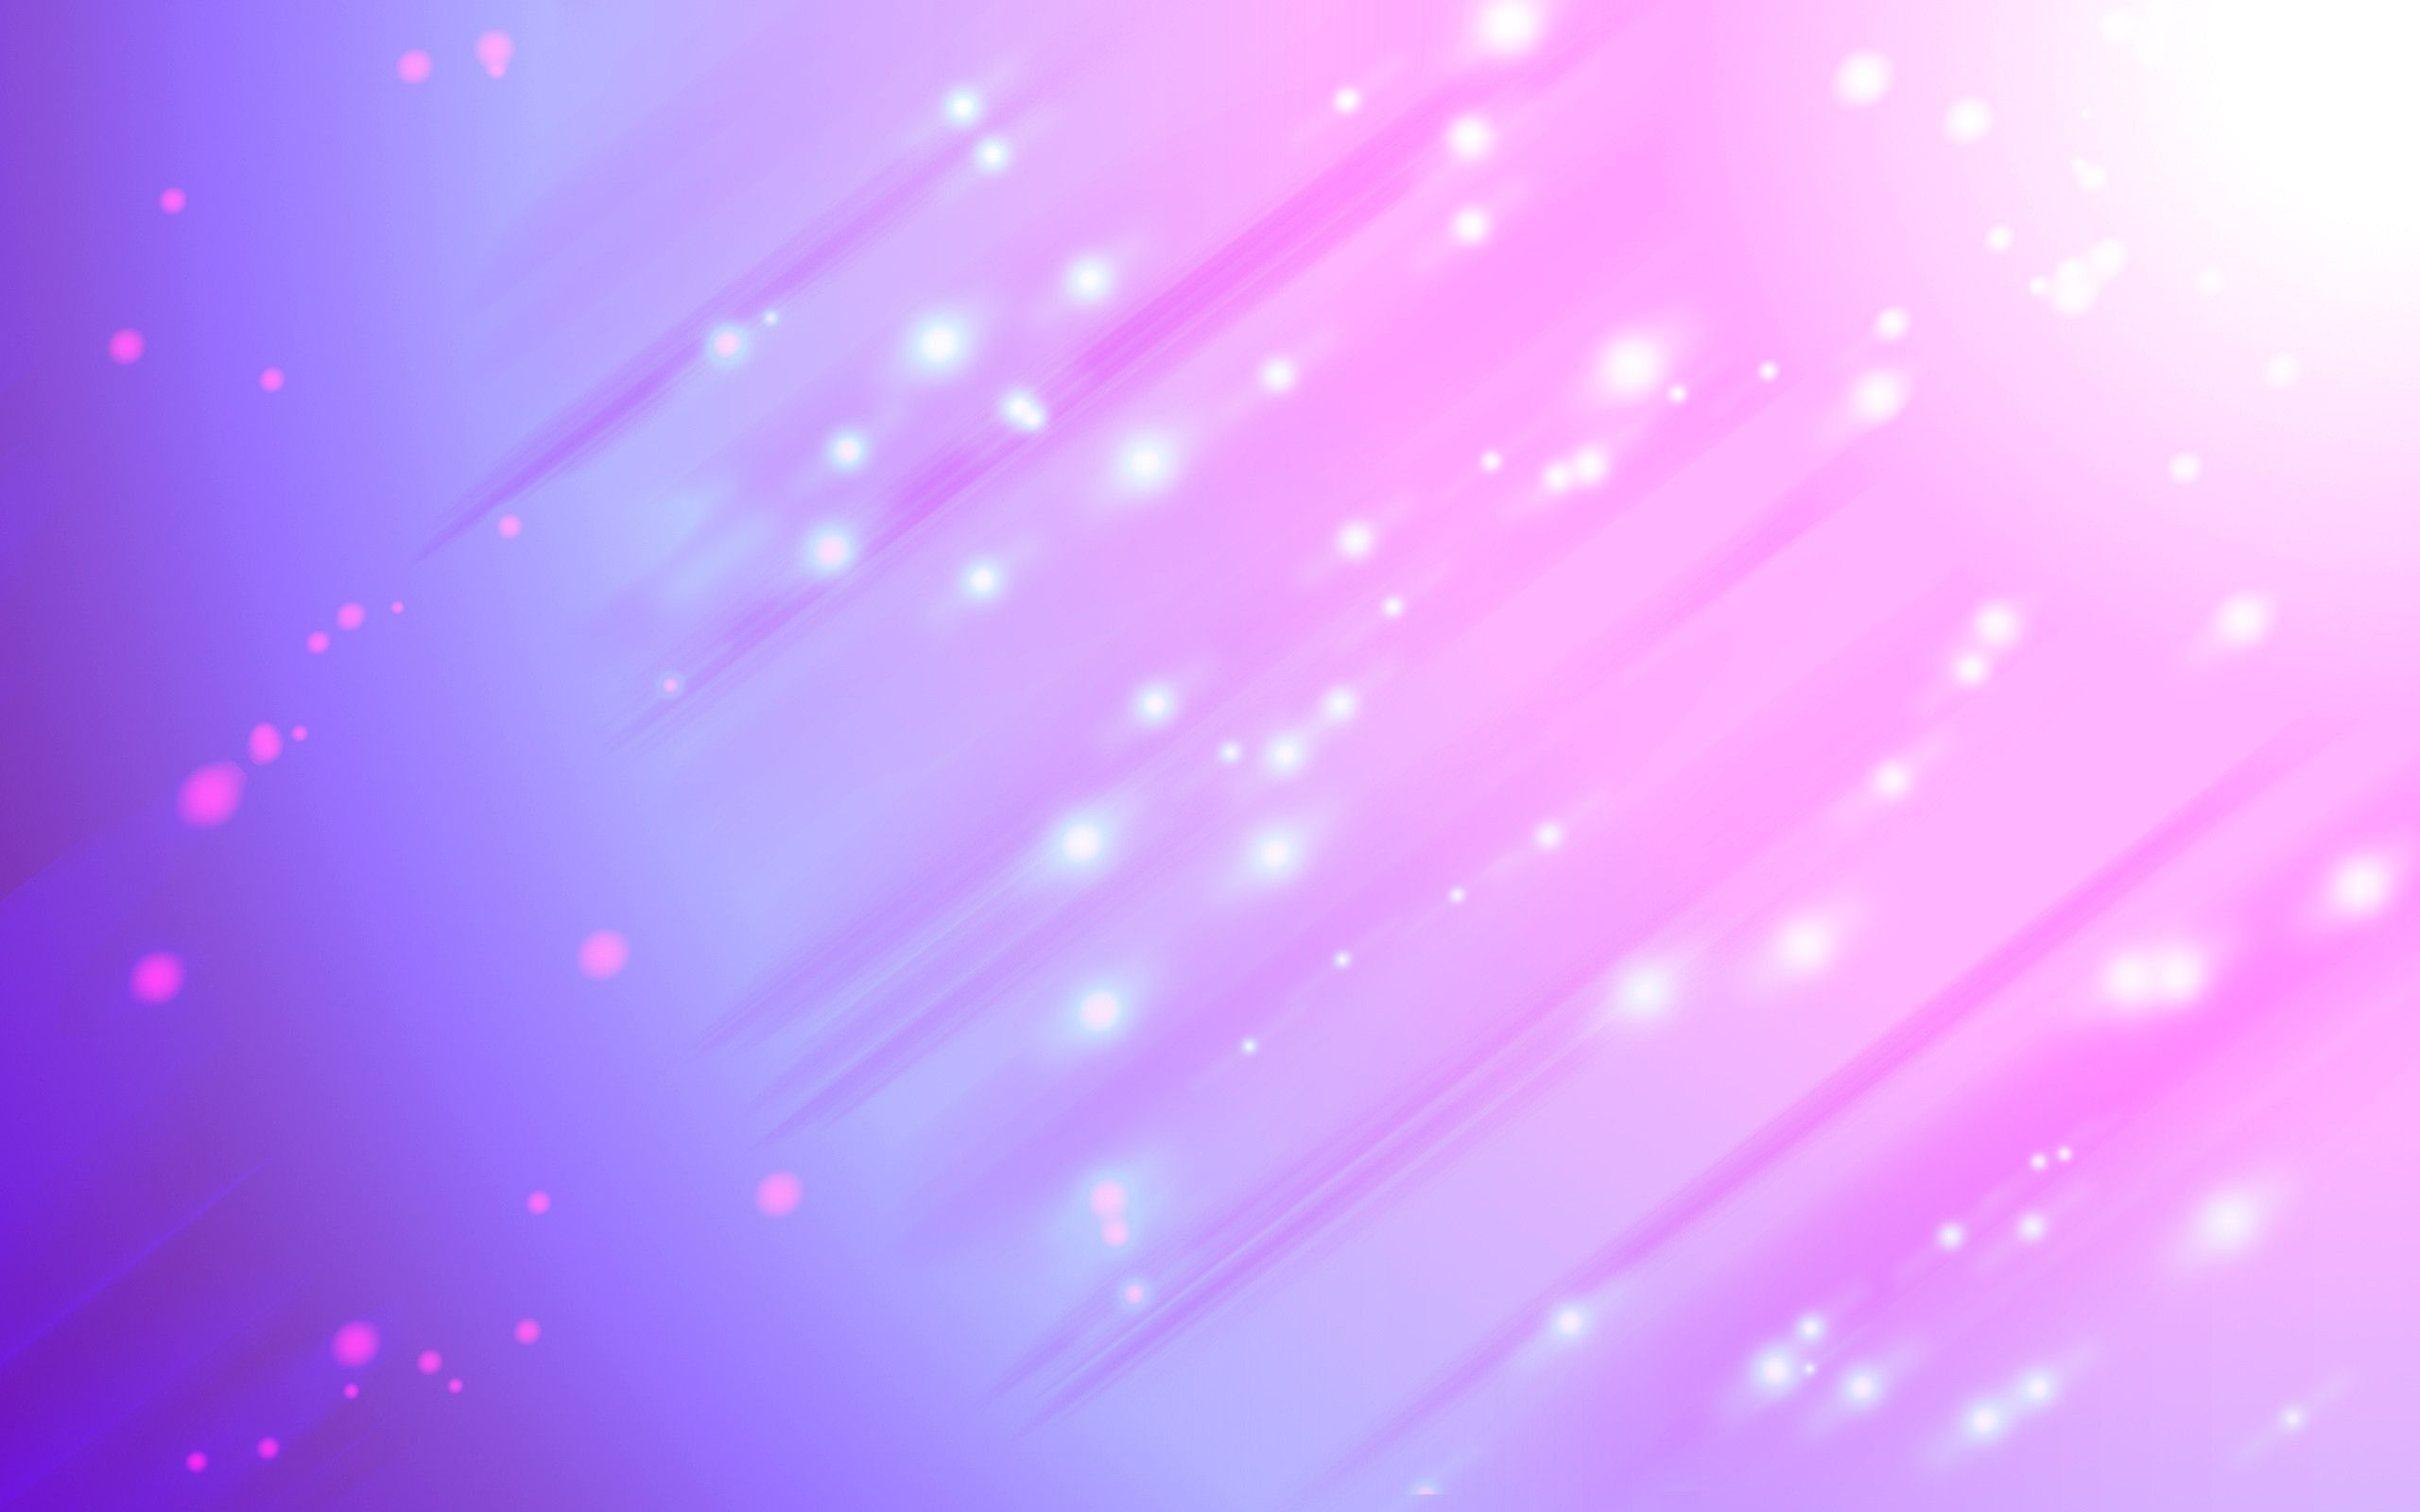 2560x1600 2560x1600 Amazing Pink Background Tumblr 2560x1600 Pink Wallpaper Backgrounds Pink Wallpaper Abstract Light Purple Wallpaper